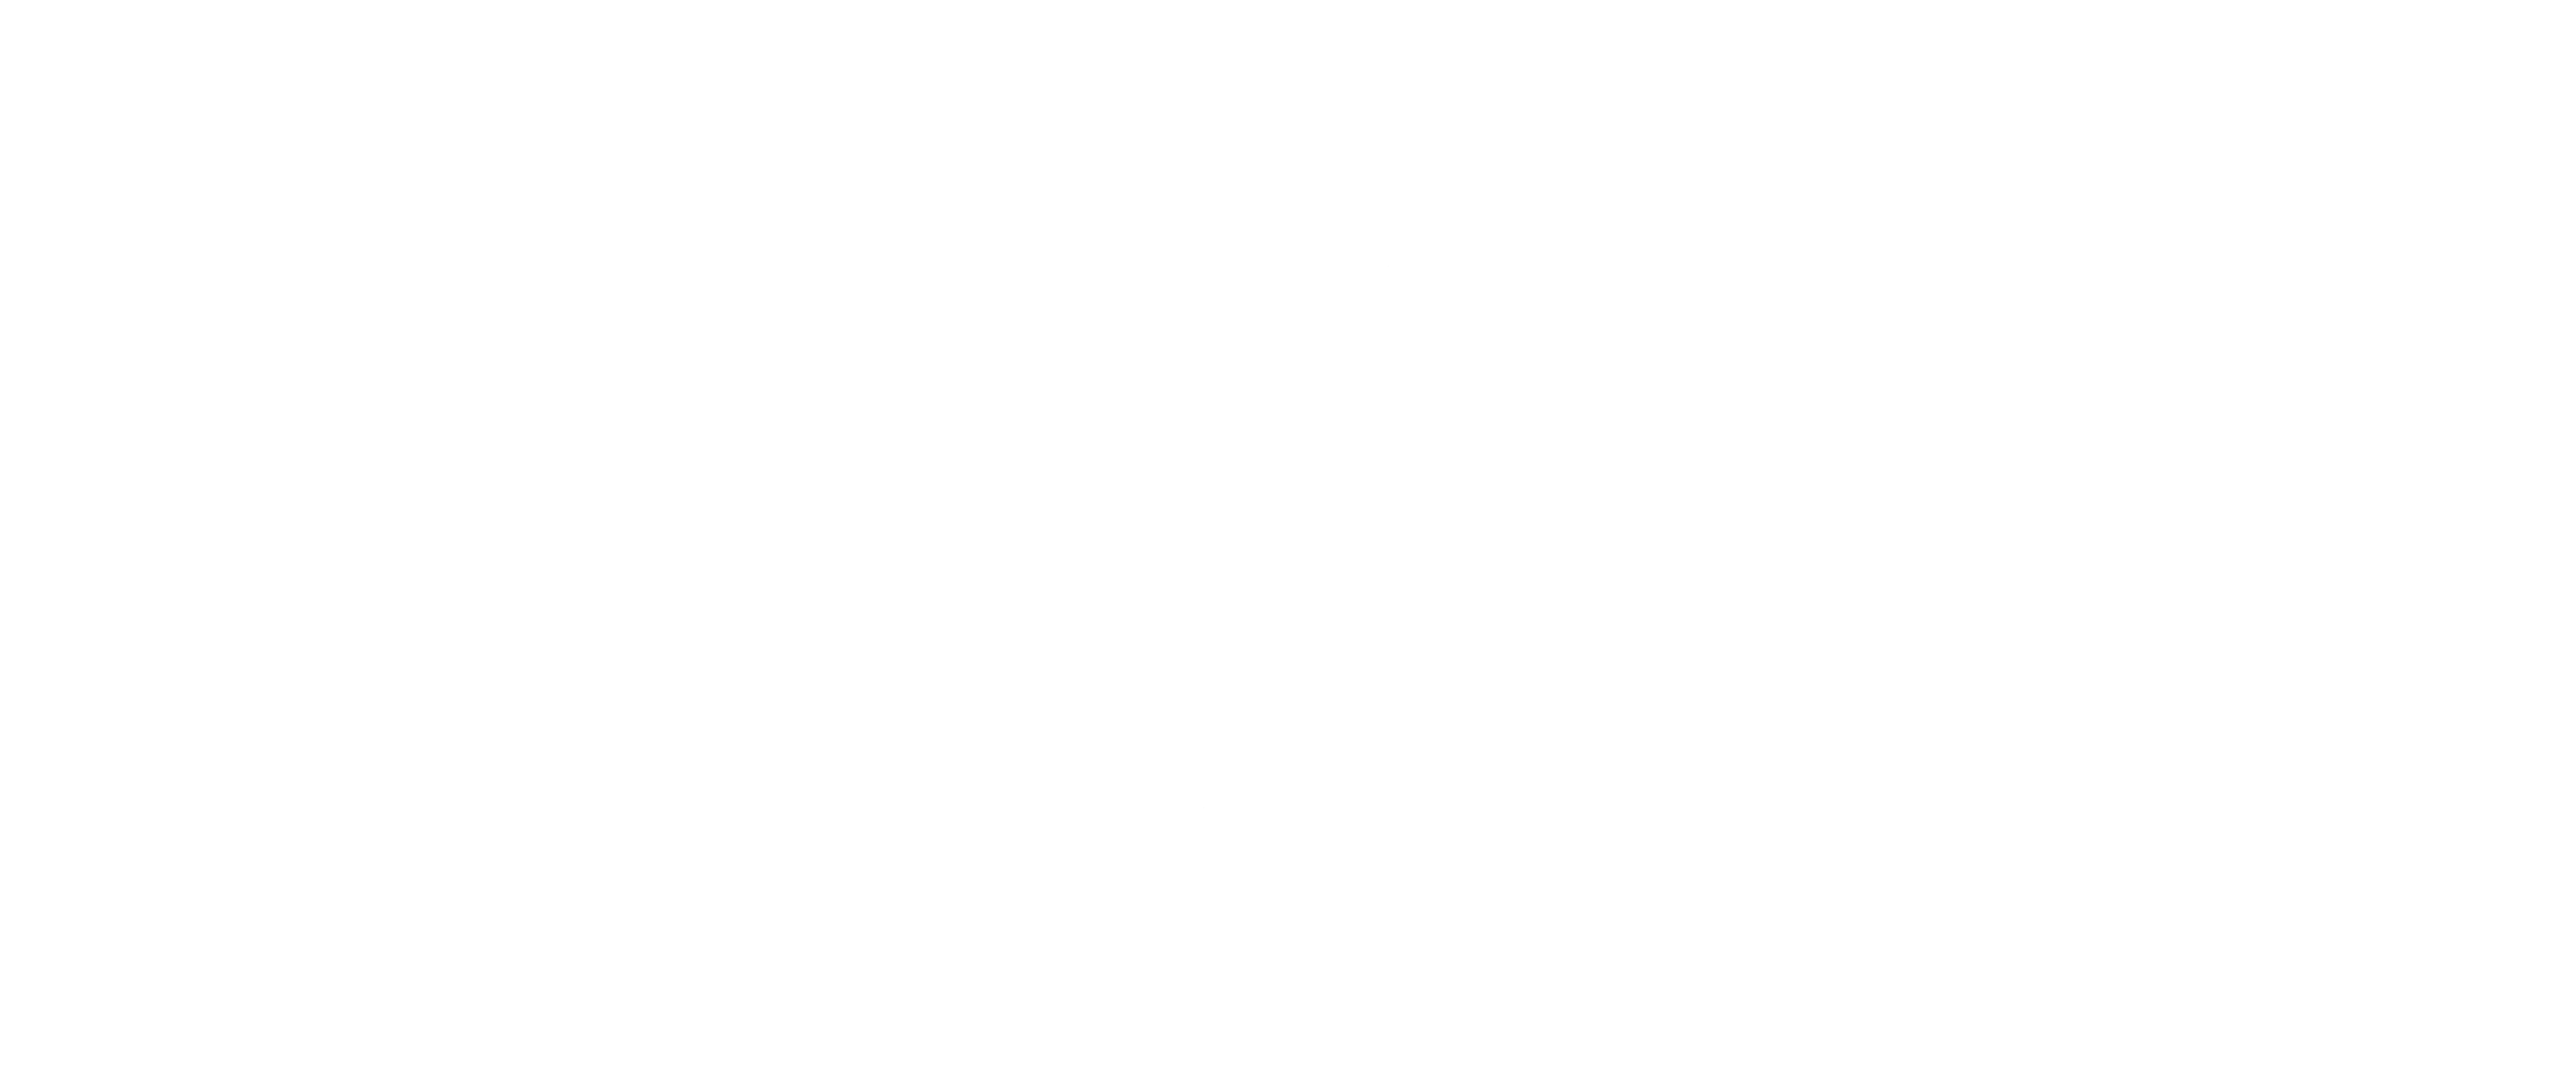 Crimson Trace first generation logo and new generation logo